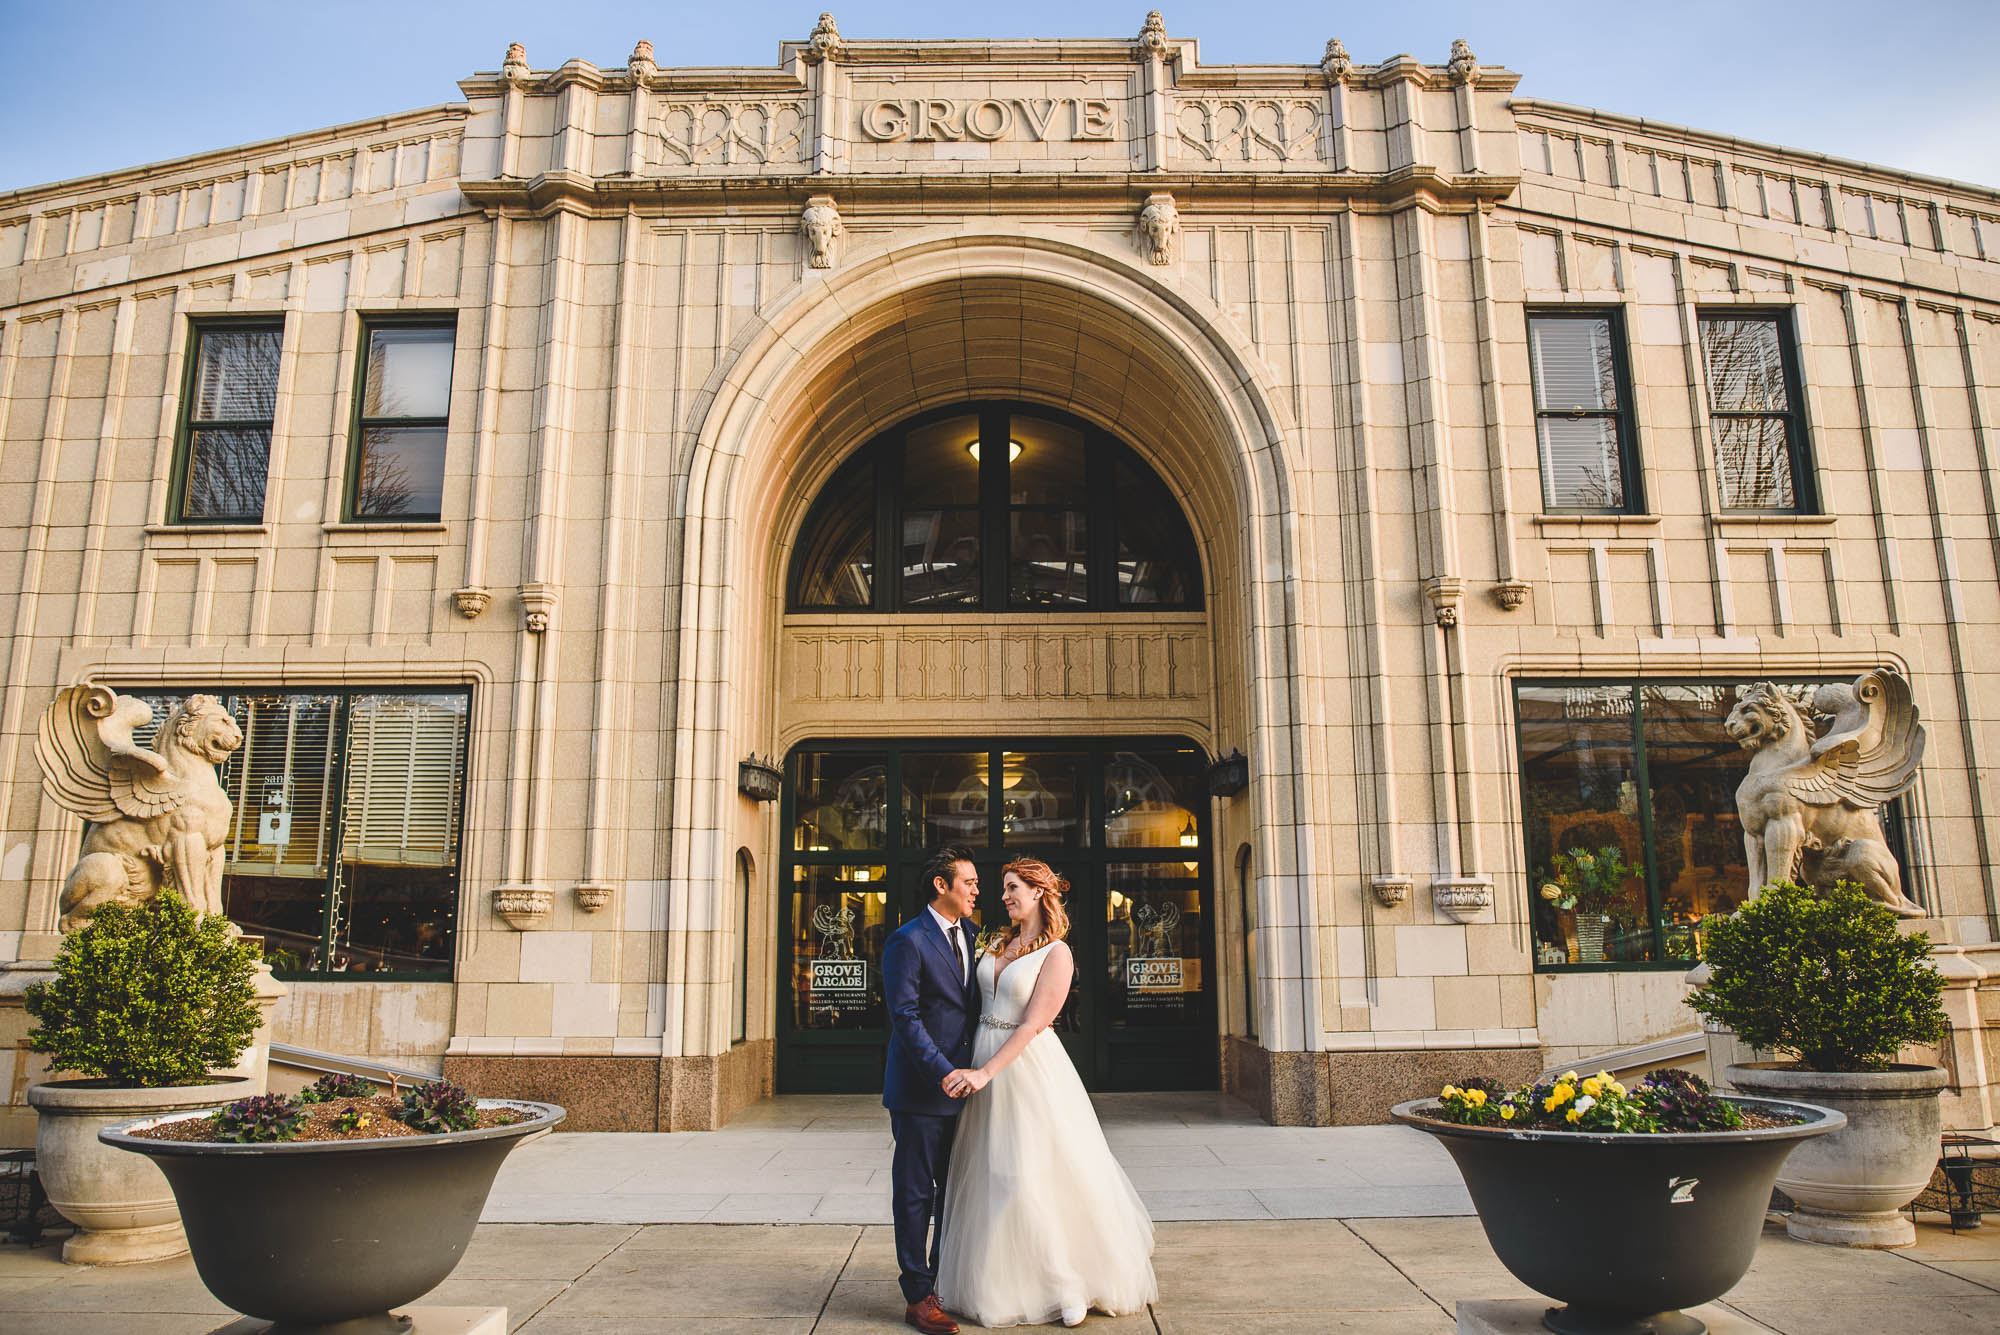 Grove Arcade wedding portrait